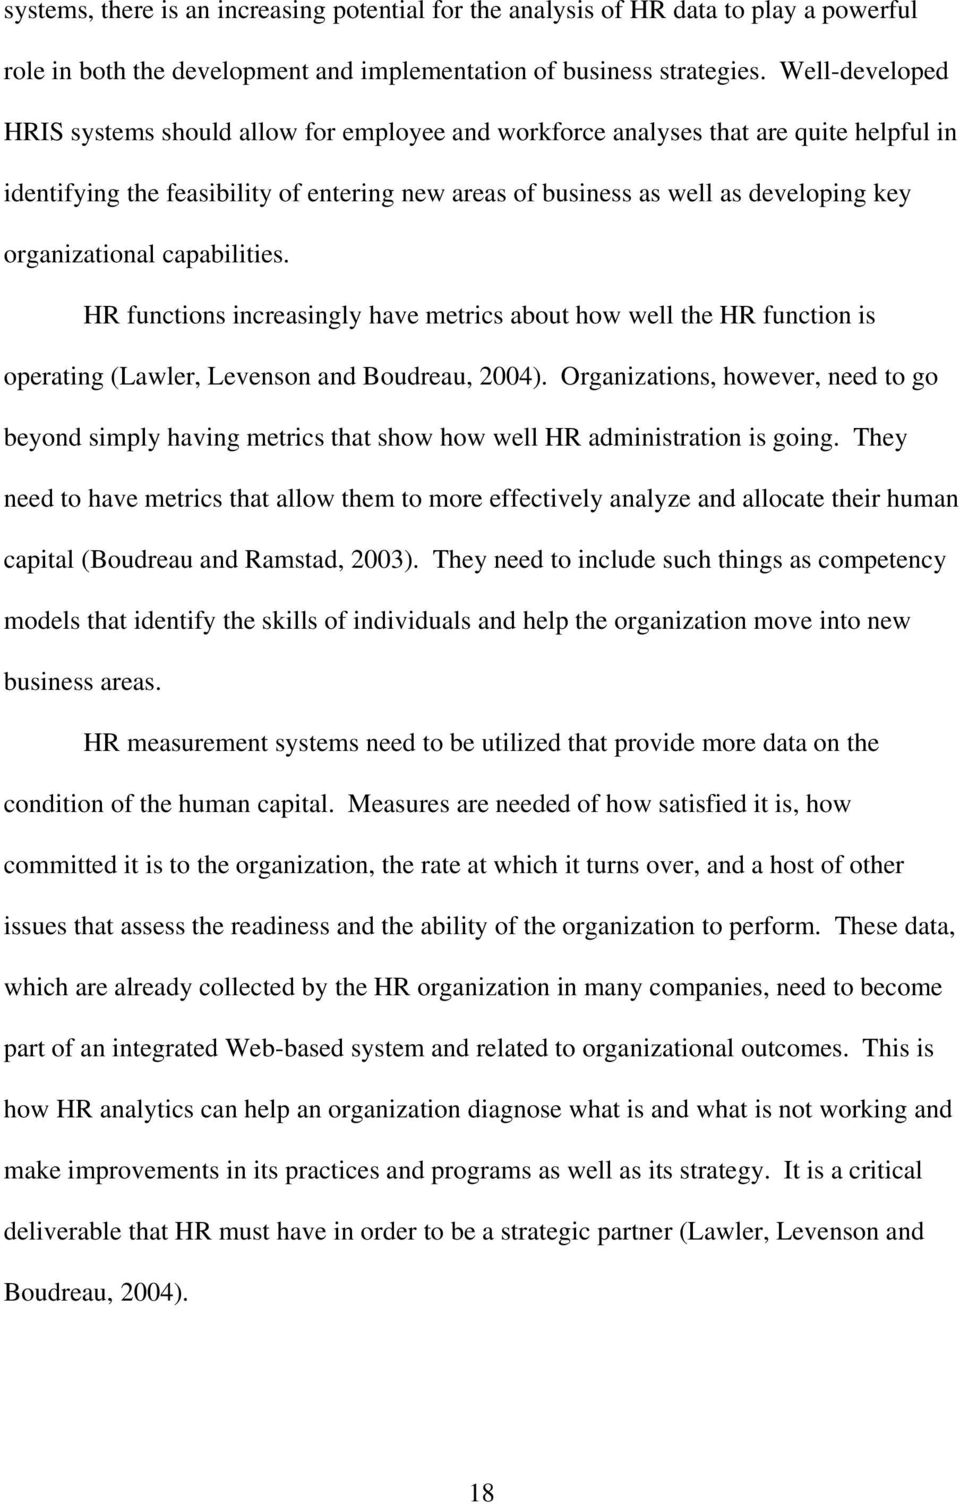 organizational capabilities. HR functions increasingly have metrics about how well the HR function is operating (Lawler, Levenson and Boudreau, 2004).